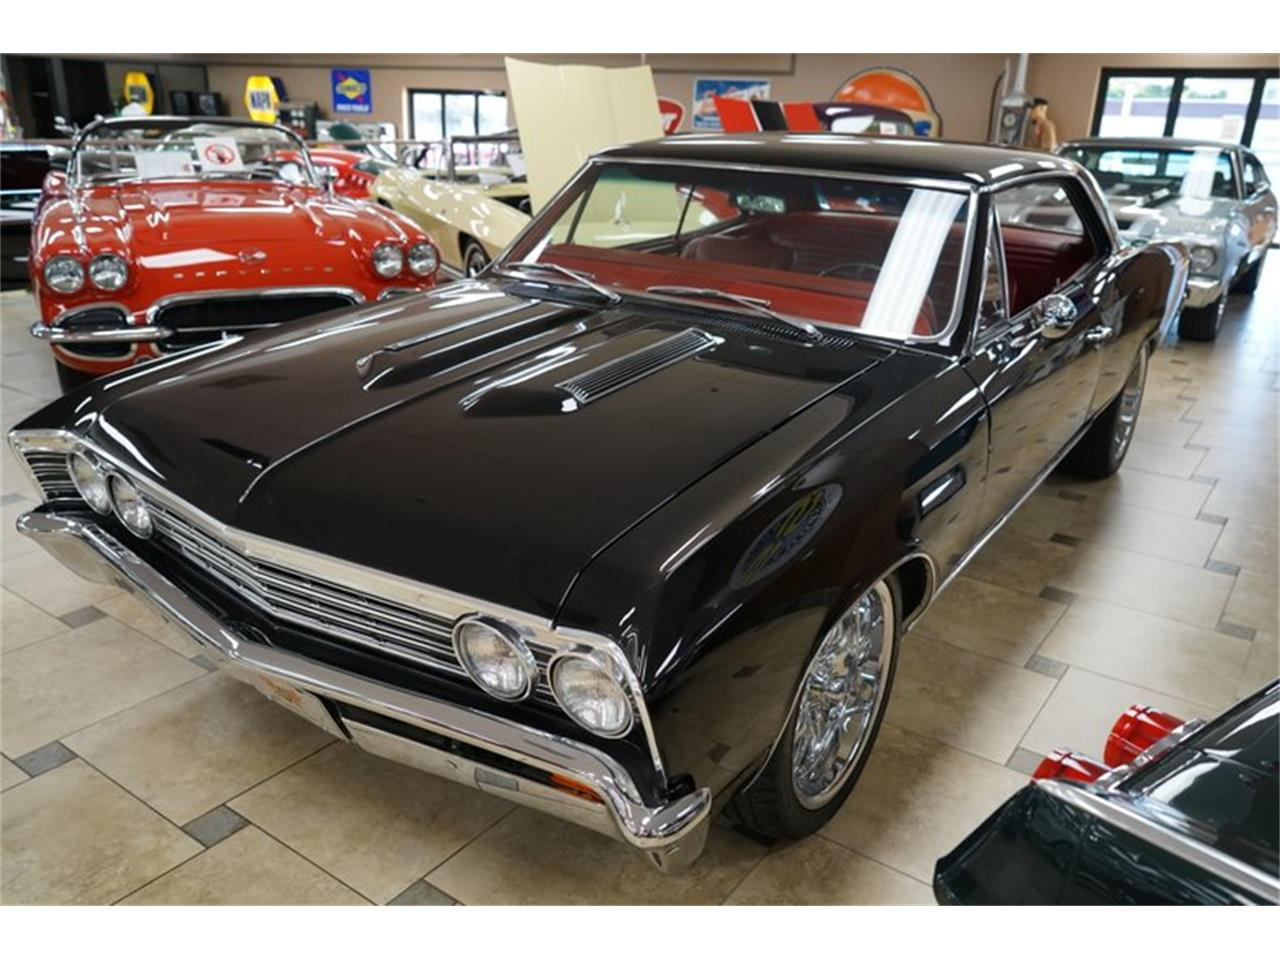 Large Picture of '67 Chevrolet Chevelle located in Venice Florida Auction Vehicle Offered by Ideal Classic Cars - PE7P